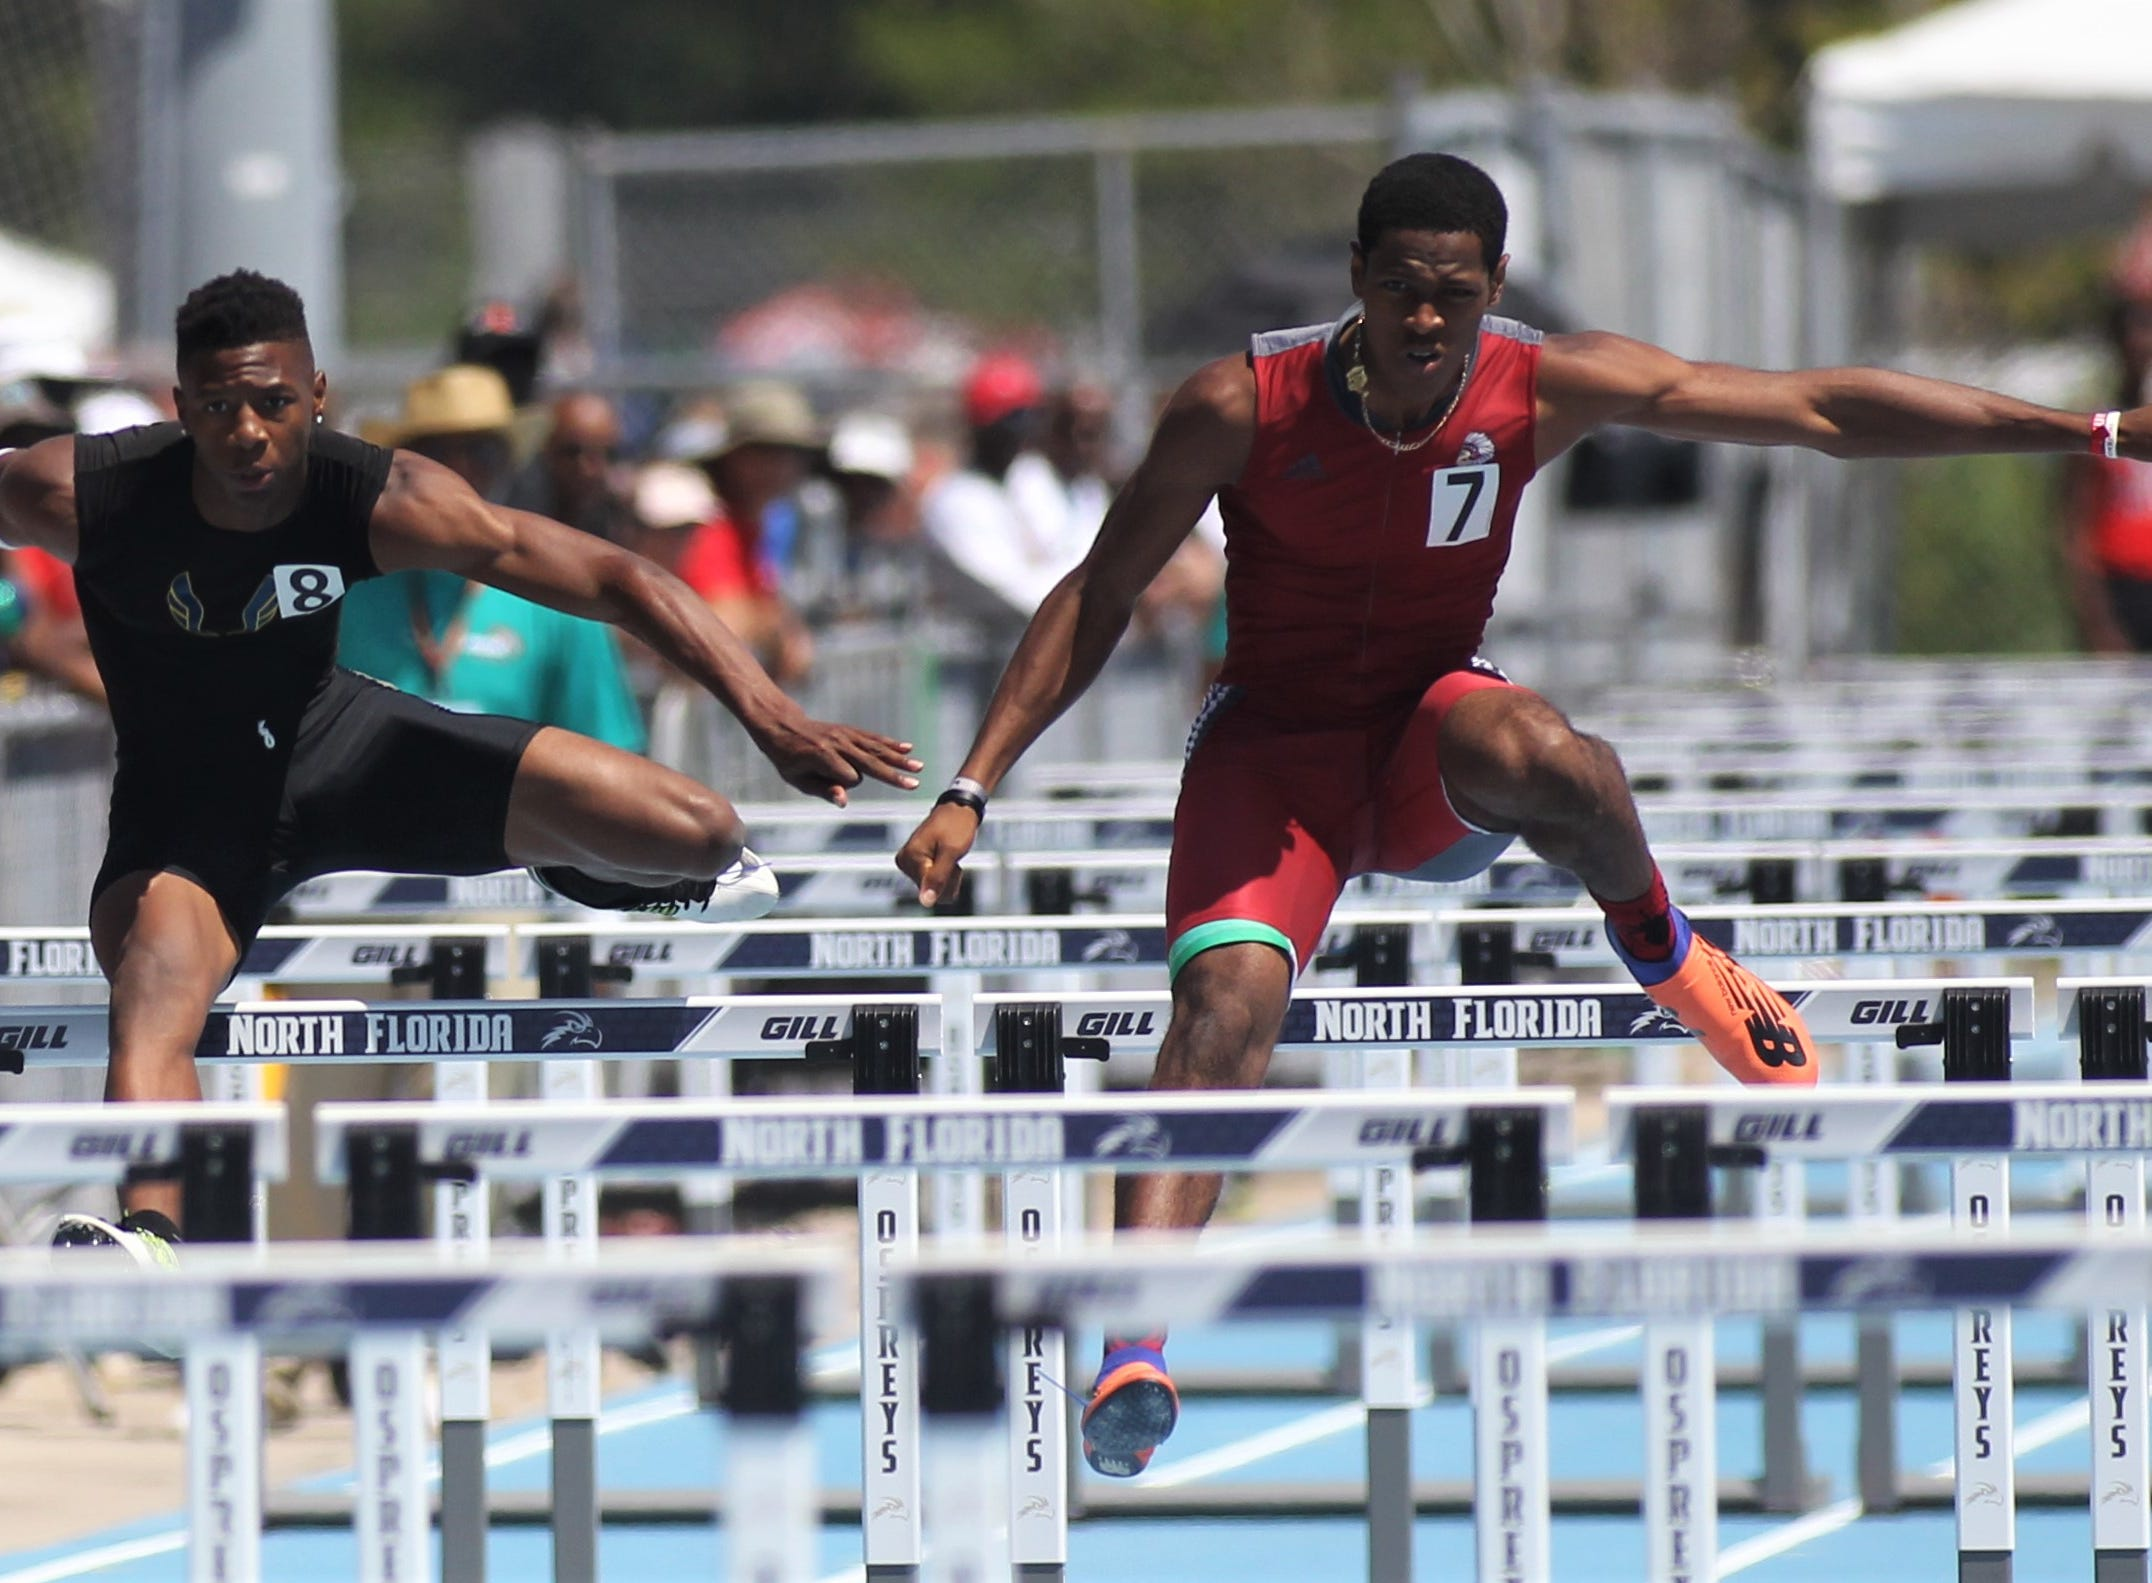 Rickards senior Chris Robinson took third in Class 2A 110m hurdles at the FHSAA Track and Field State Championships at UNF's Hodges Stadium in Jacksonville on May 4, 2019.